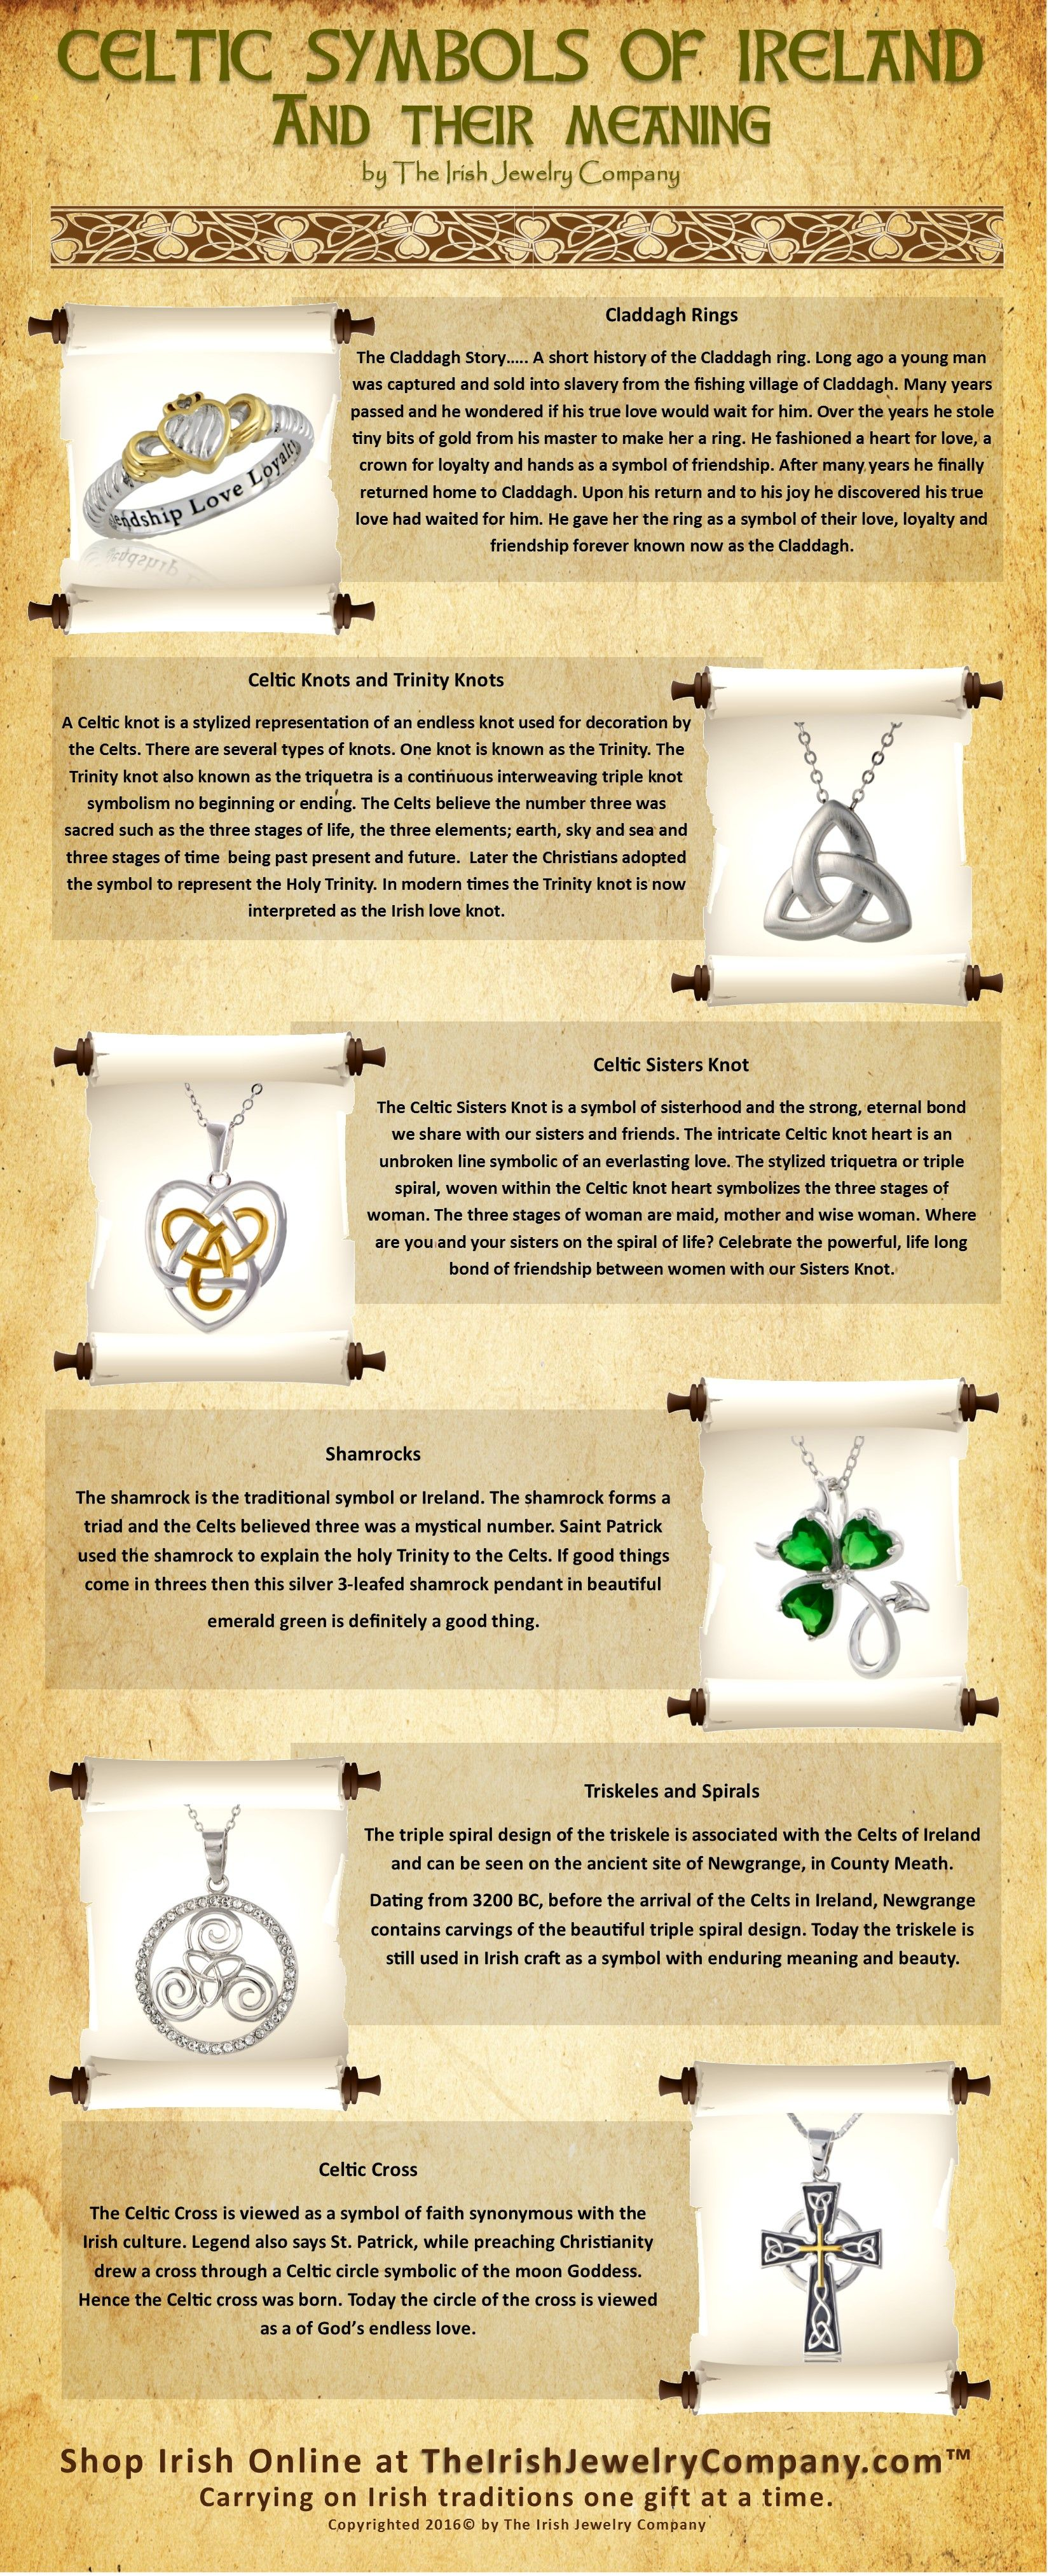 Celtic symbols and what they mean great for helping to write celtic symbols and what they mean great for helping to write descriptions on listings journal pages pinterest symbols kitchen witch and britain biocorpaavc Choice Image